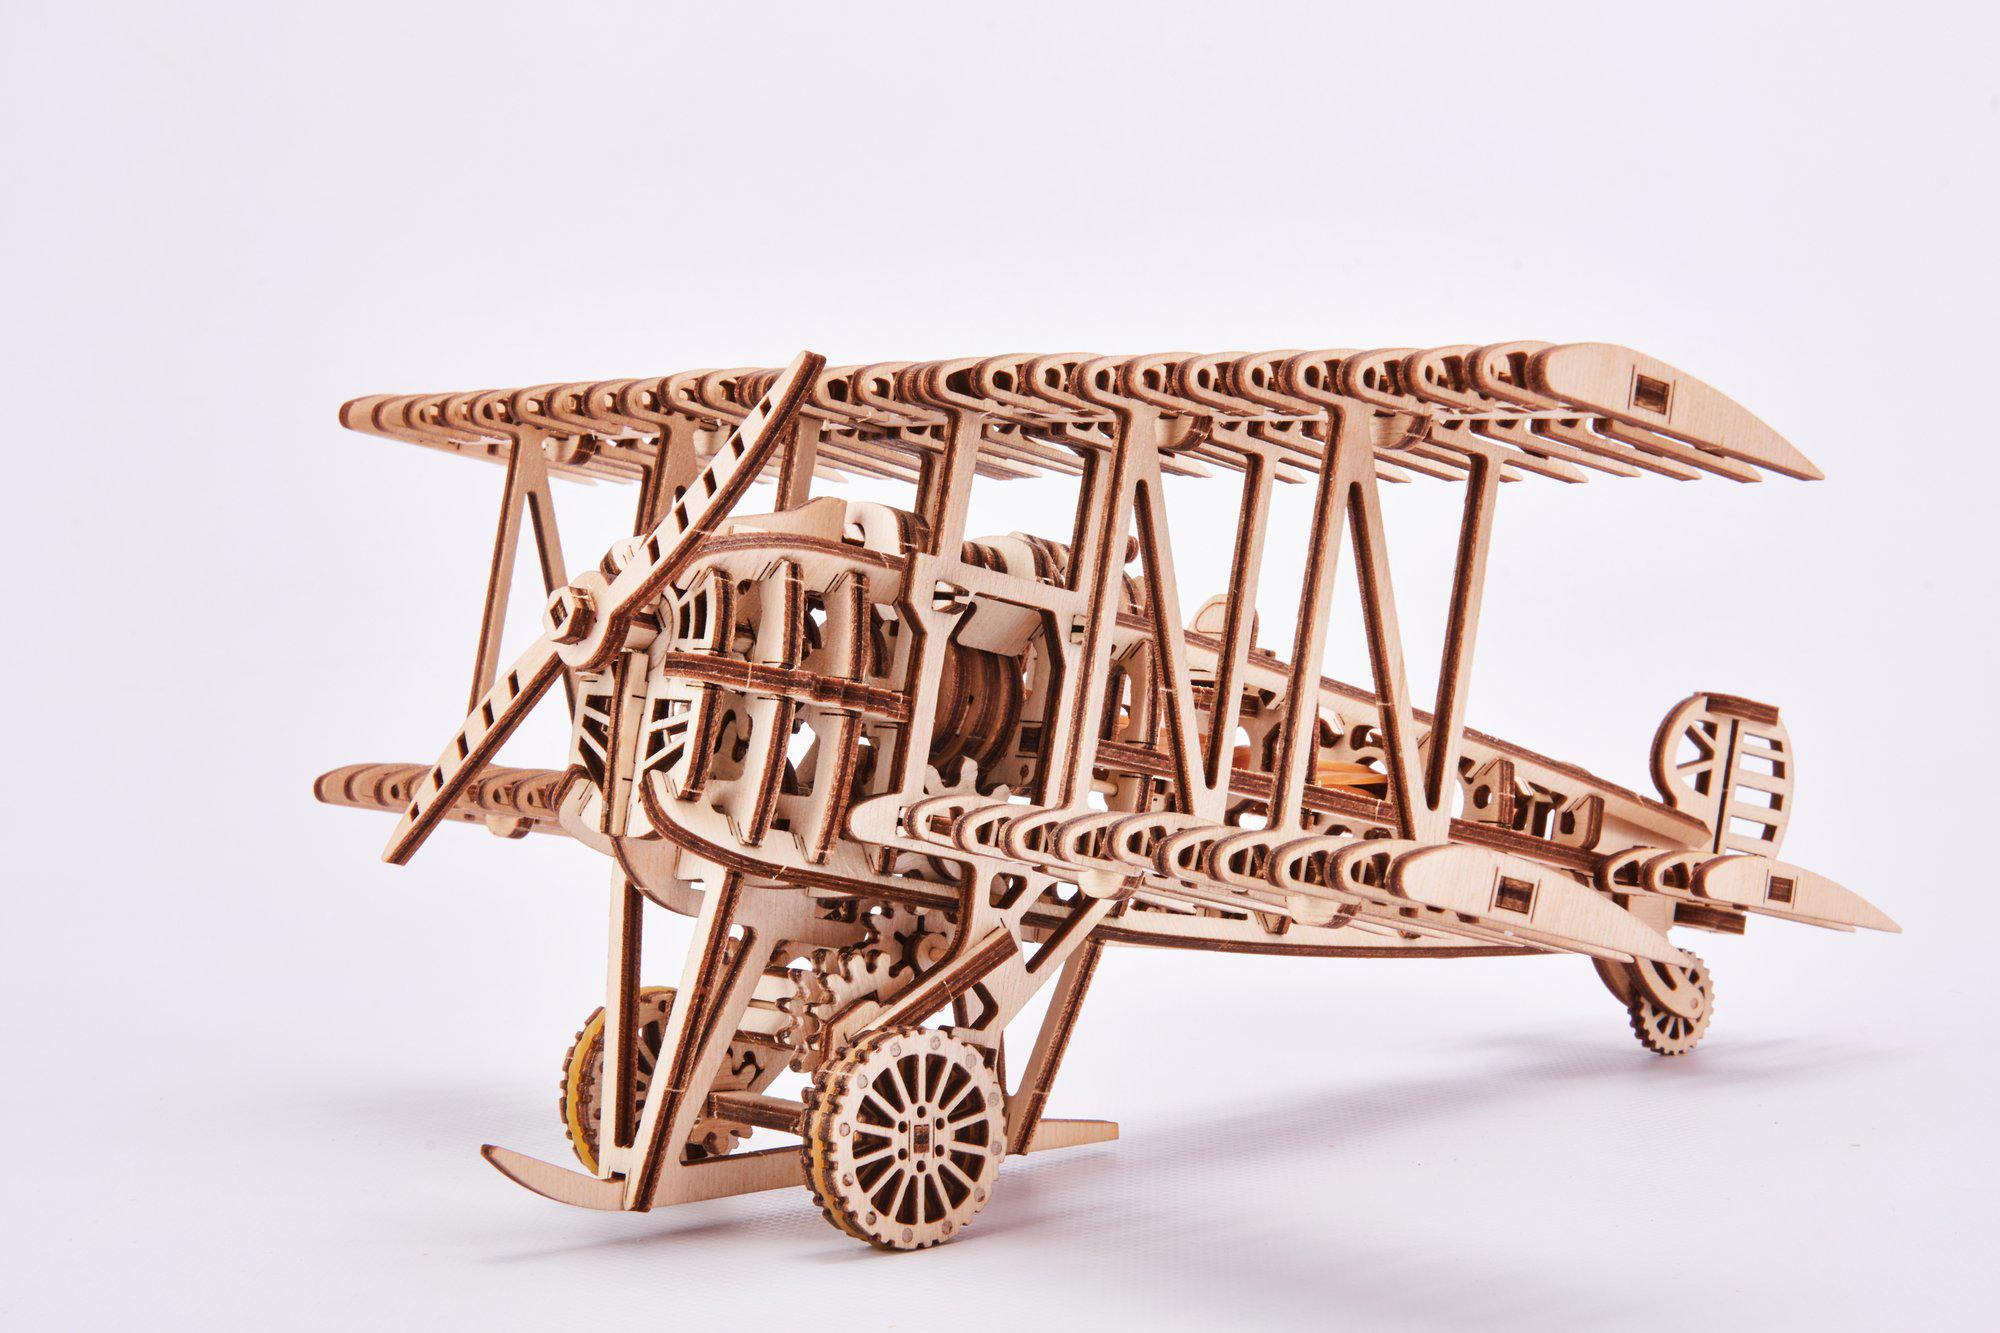 Resultado de imagen de WOOD TRICK AIRPLANE BIPLANE 3D MECHANICAL MODEL